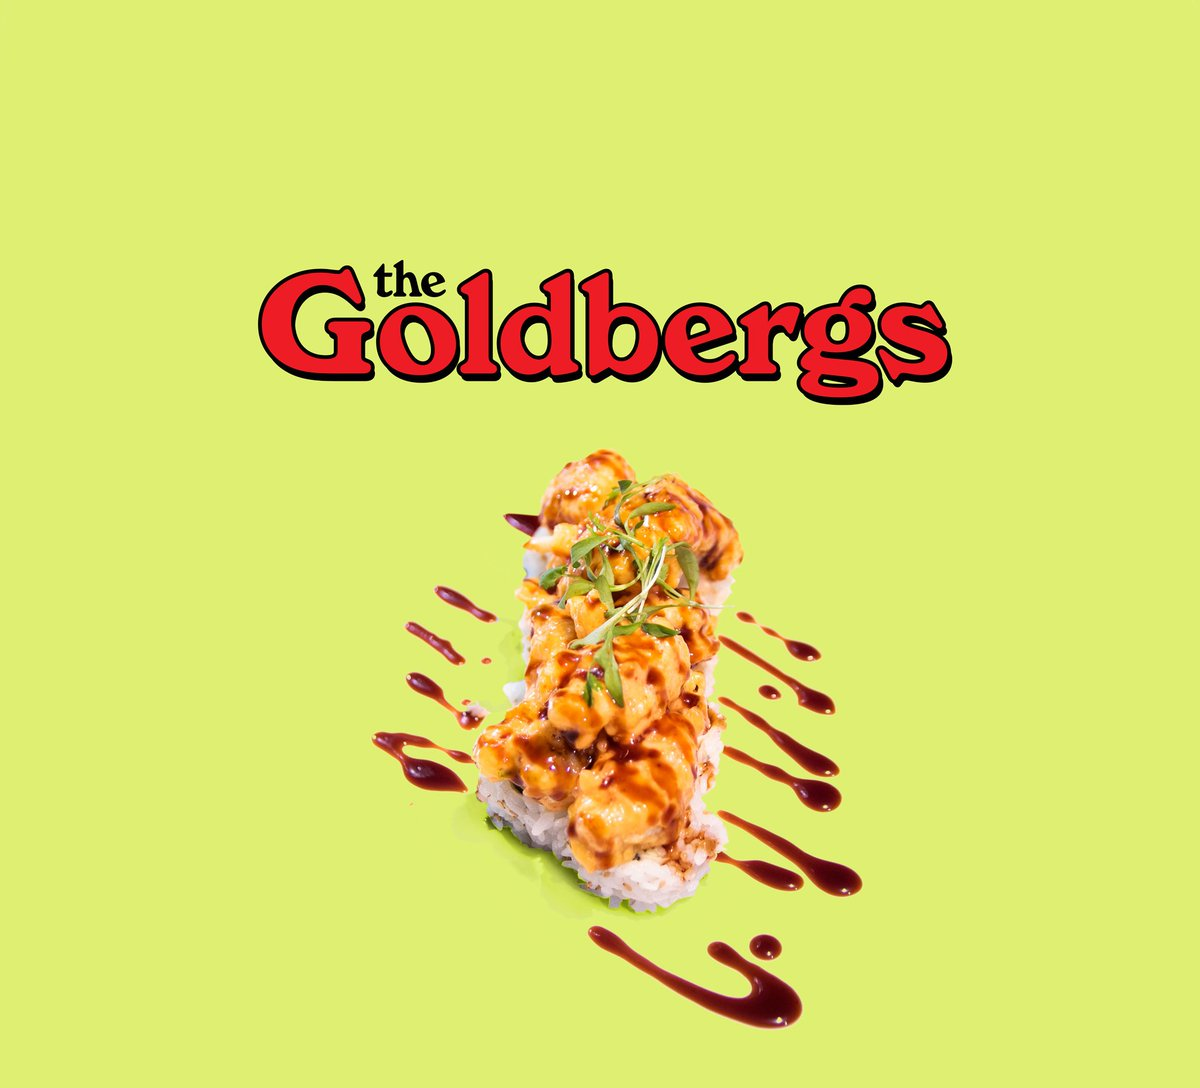 Combine @thegoldbergsabc with #Katsuya & you get the Murray Goldberg Roll! Only at #KatsuyaBW for a limited time! https://t.co/lxYKjeQGSE